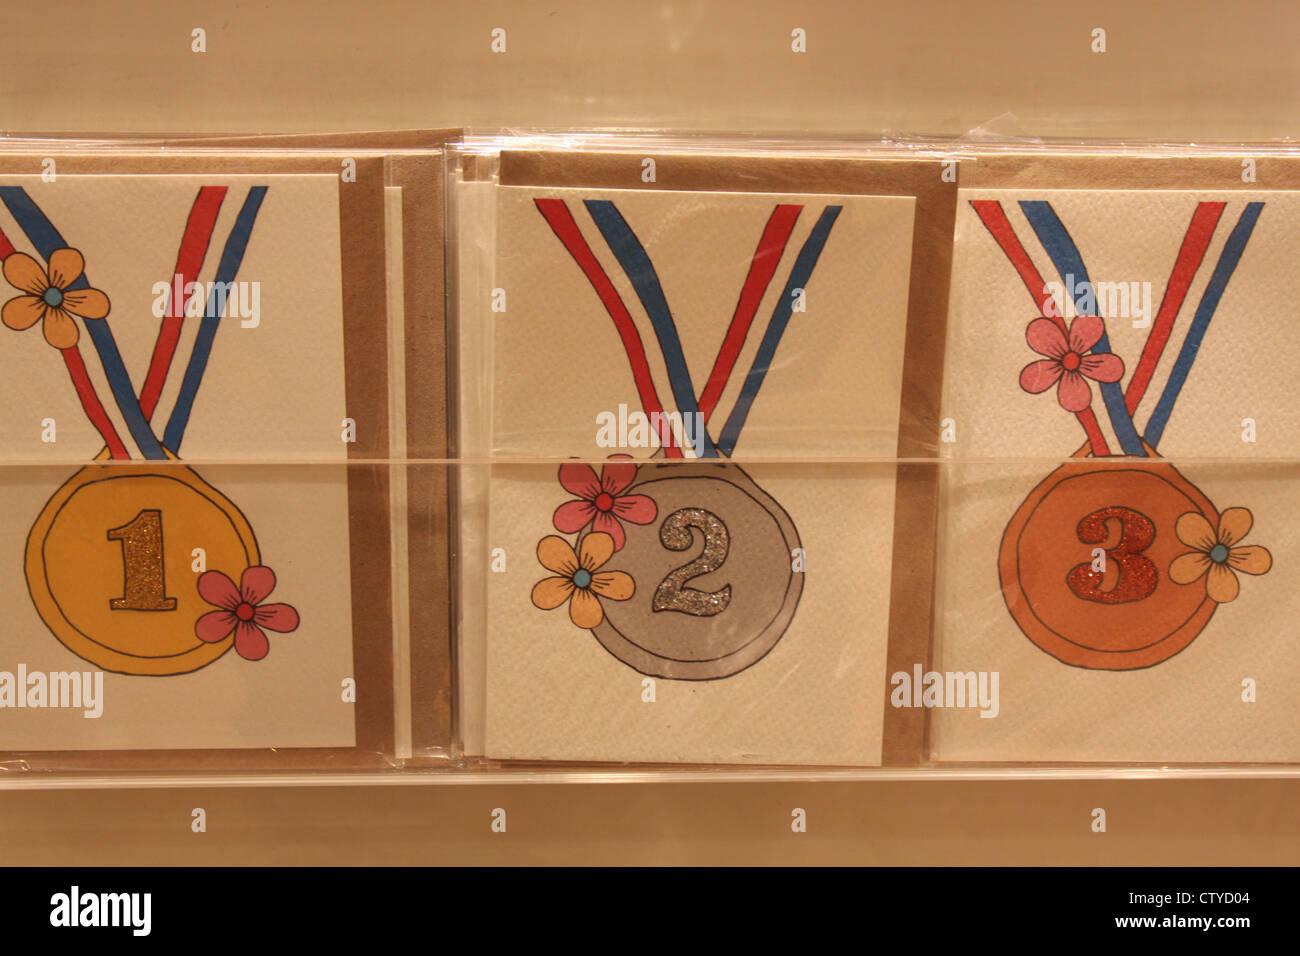 Gold silver and bronze medal greeting cards - Stock Image